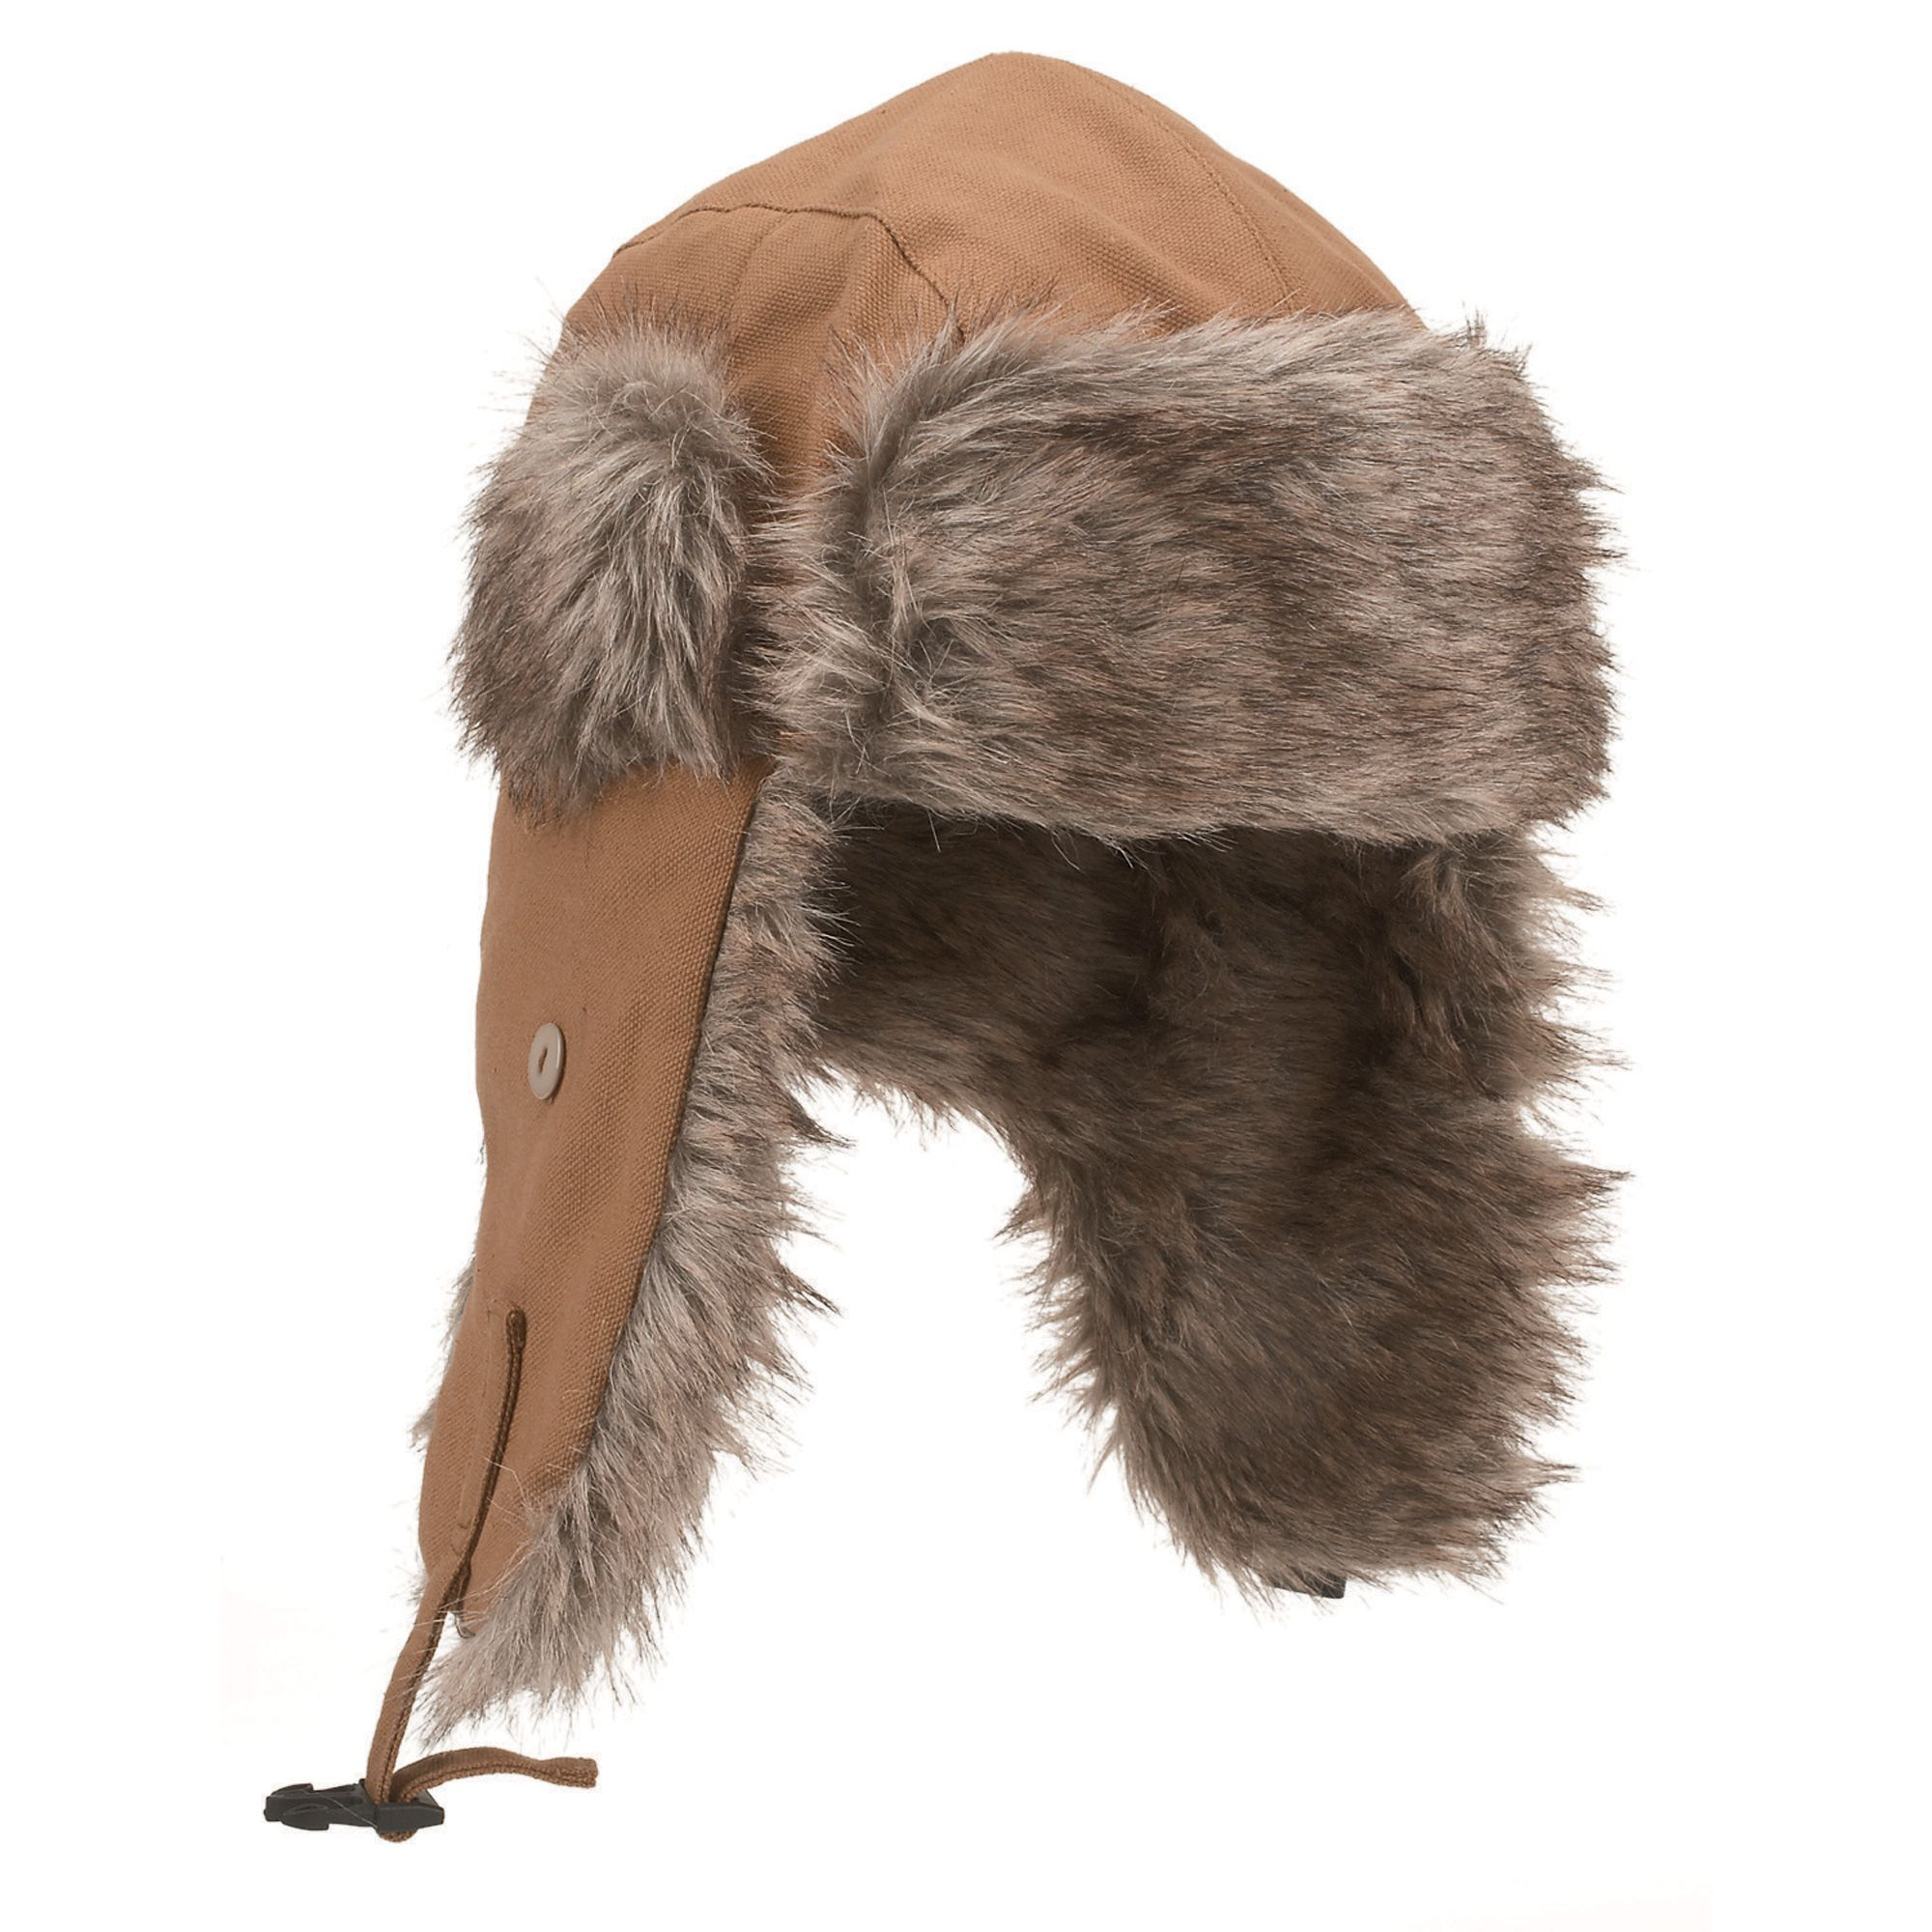 76bd43b6c4165 100% cotton canvas trapper hat is insulated with 40 grams of Thinsulate™  for comfort in extremely cold weather. Faux fur-lined earflaps and front  flap offer ...